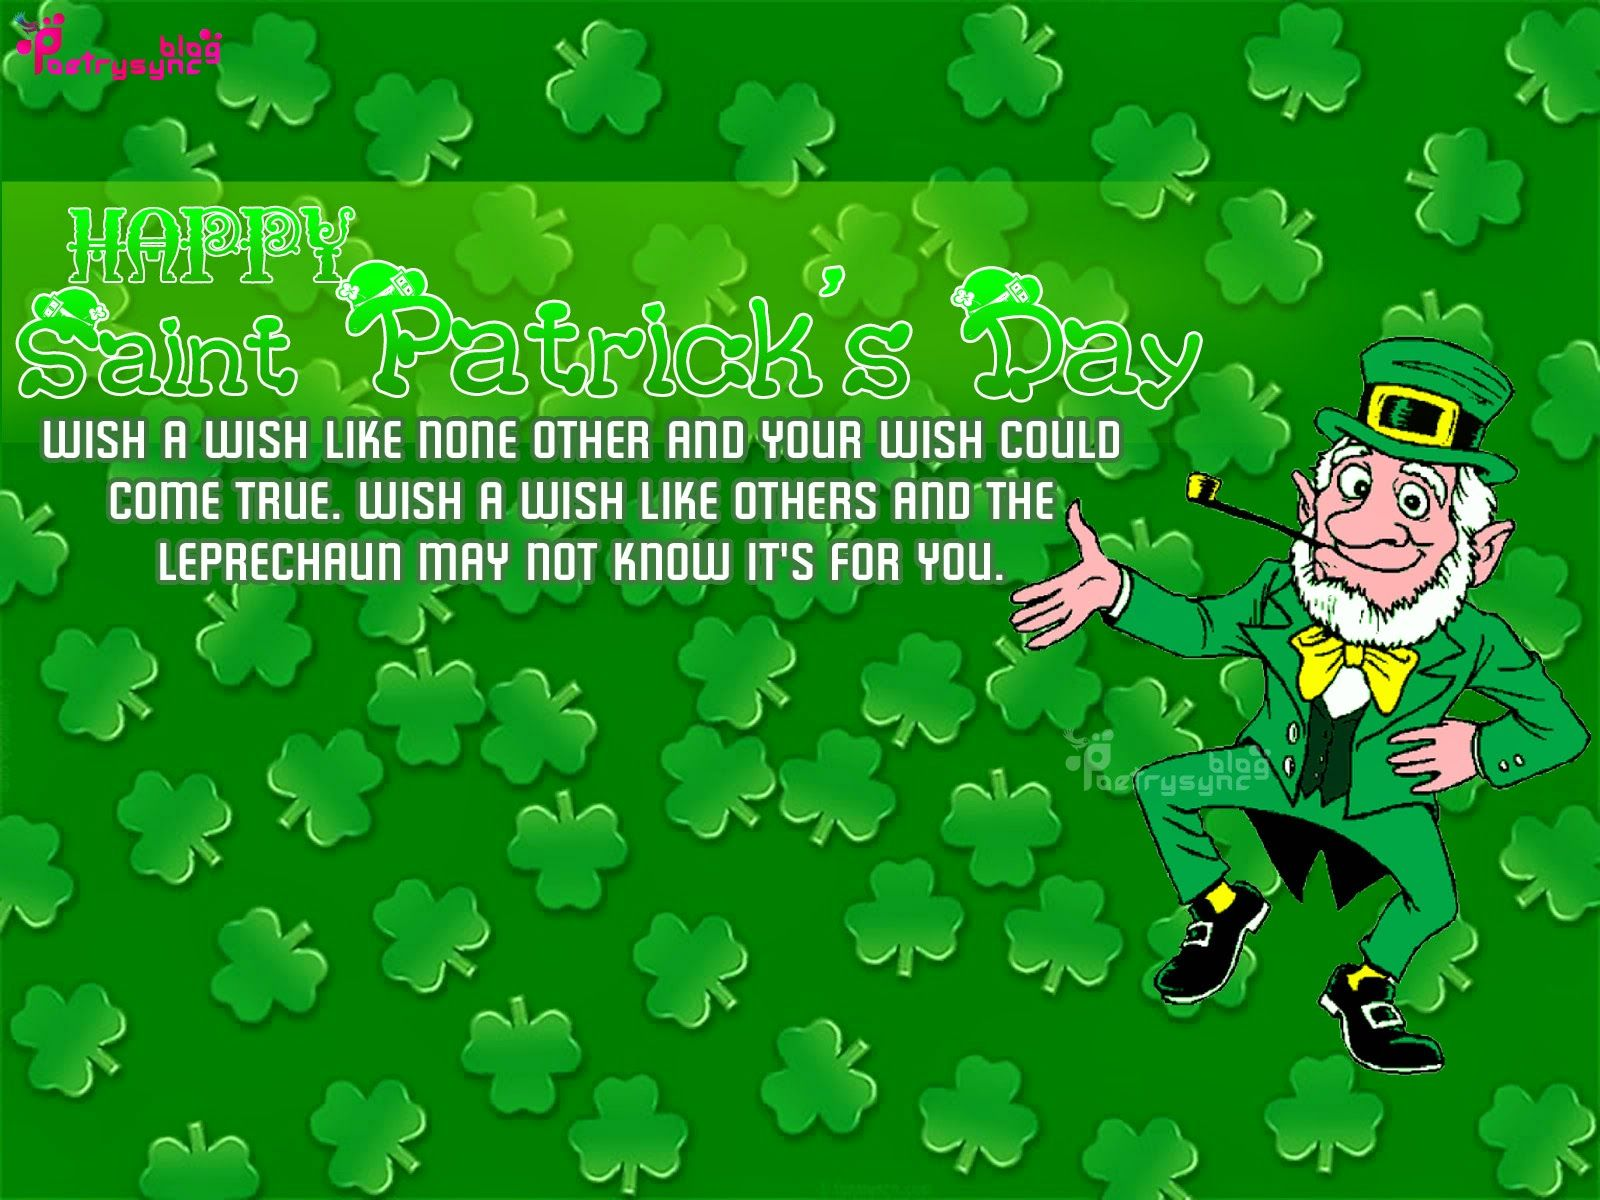 Patty Day Wishes And Greeting Picture Card With Message Saint